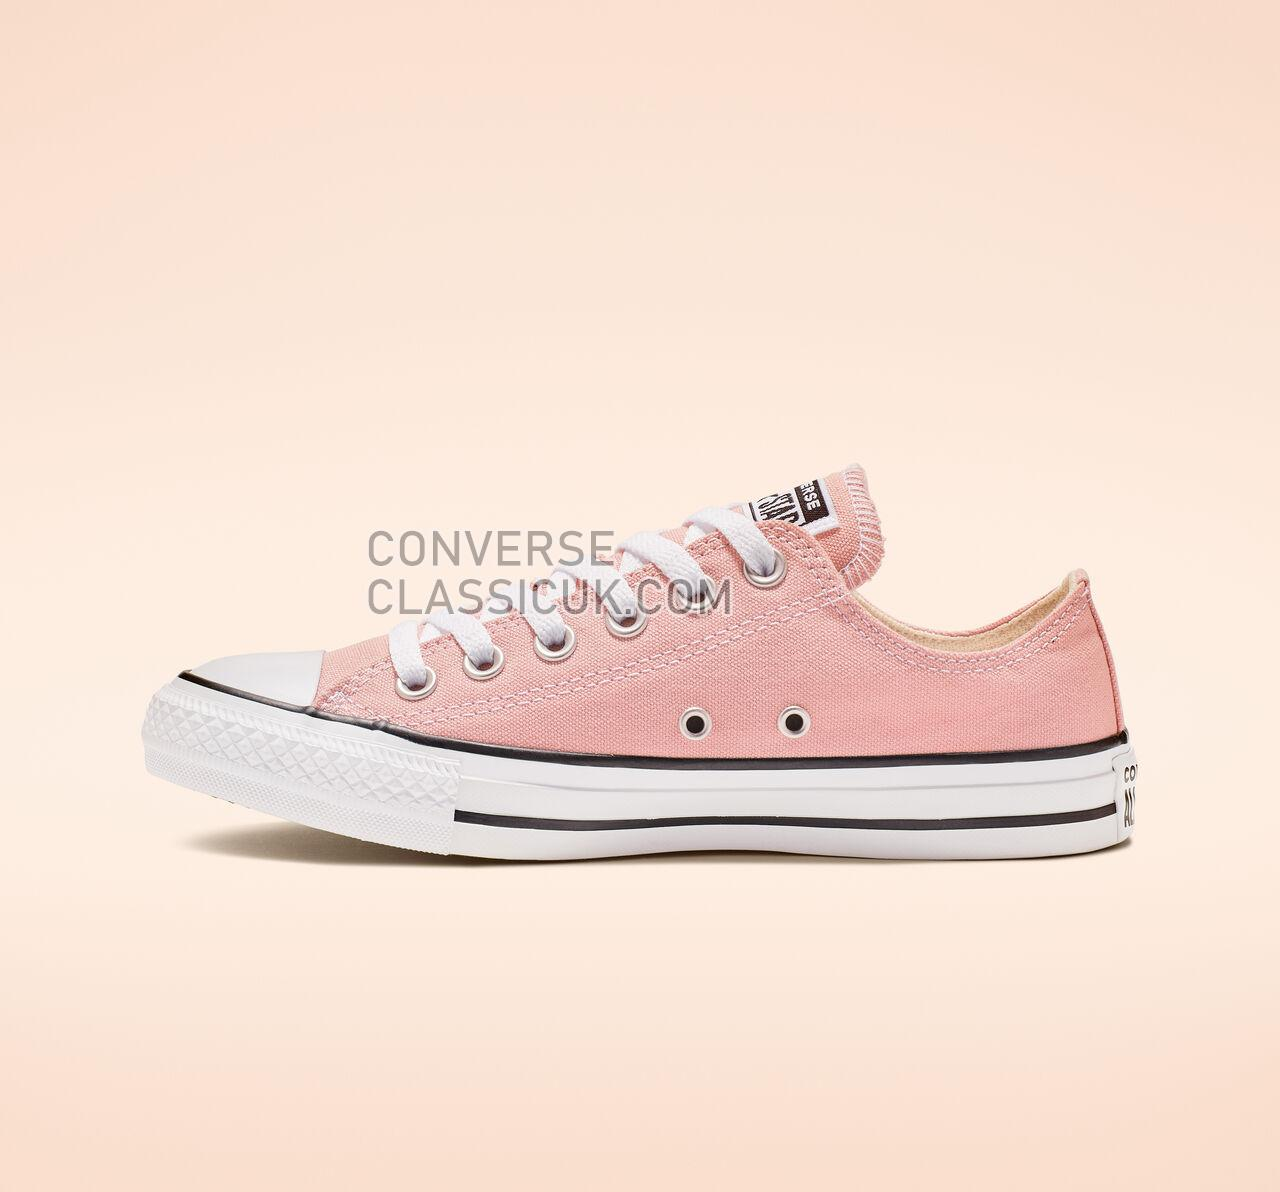 Converse Chuck Taylor All Star Seasonal Color Low Top Mens Womens Unisex 164936F Coastal Pink Shoes